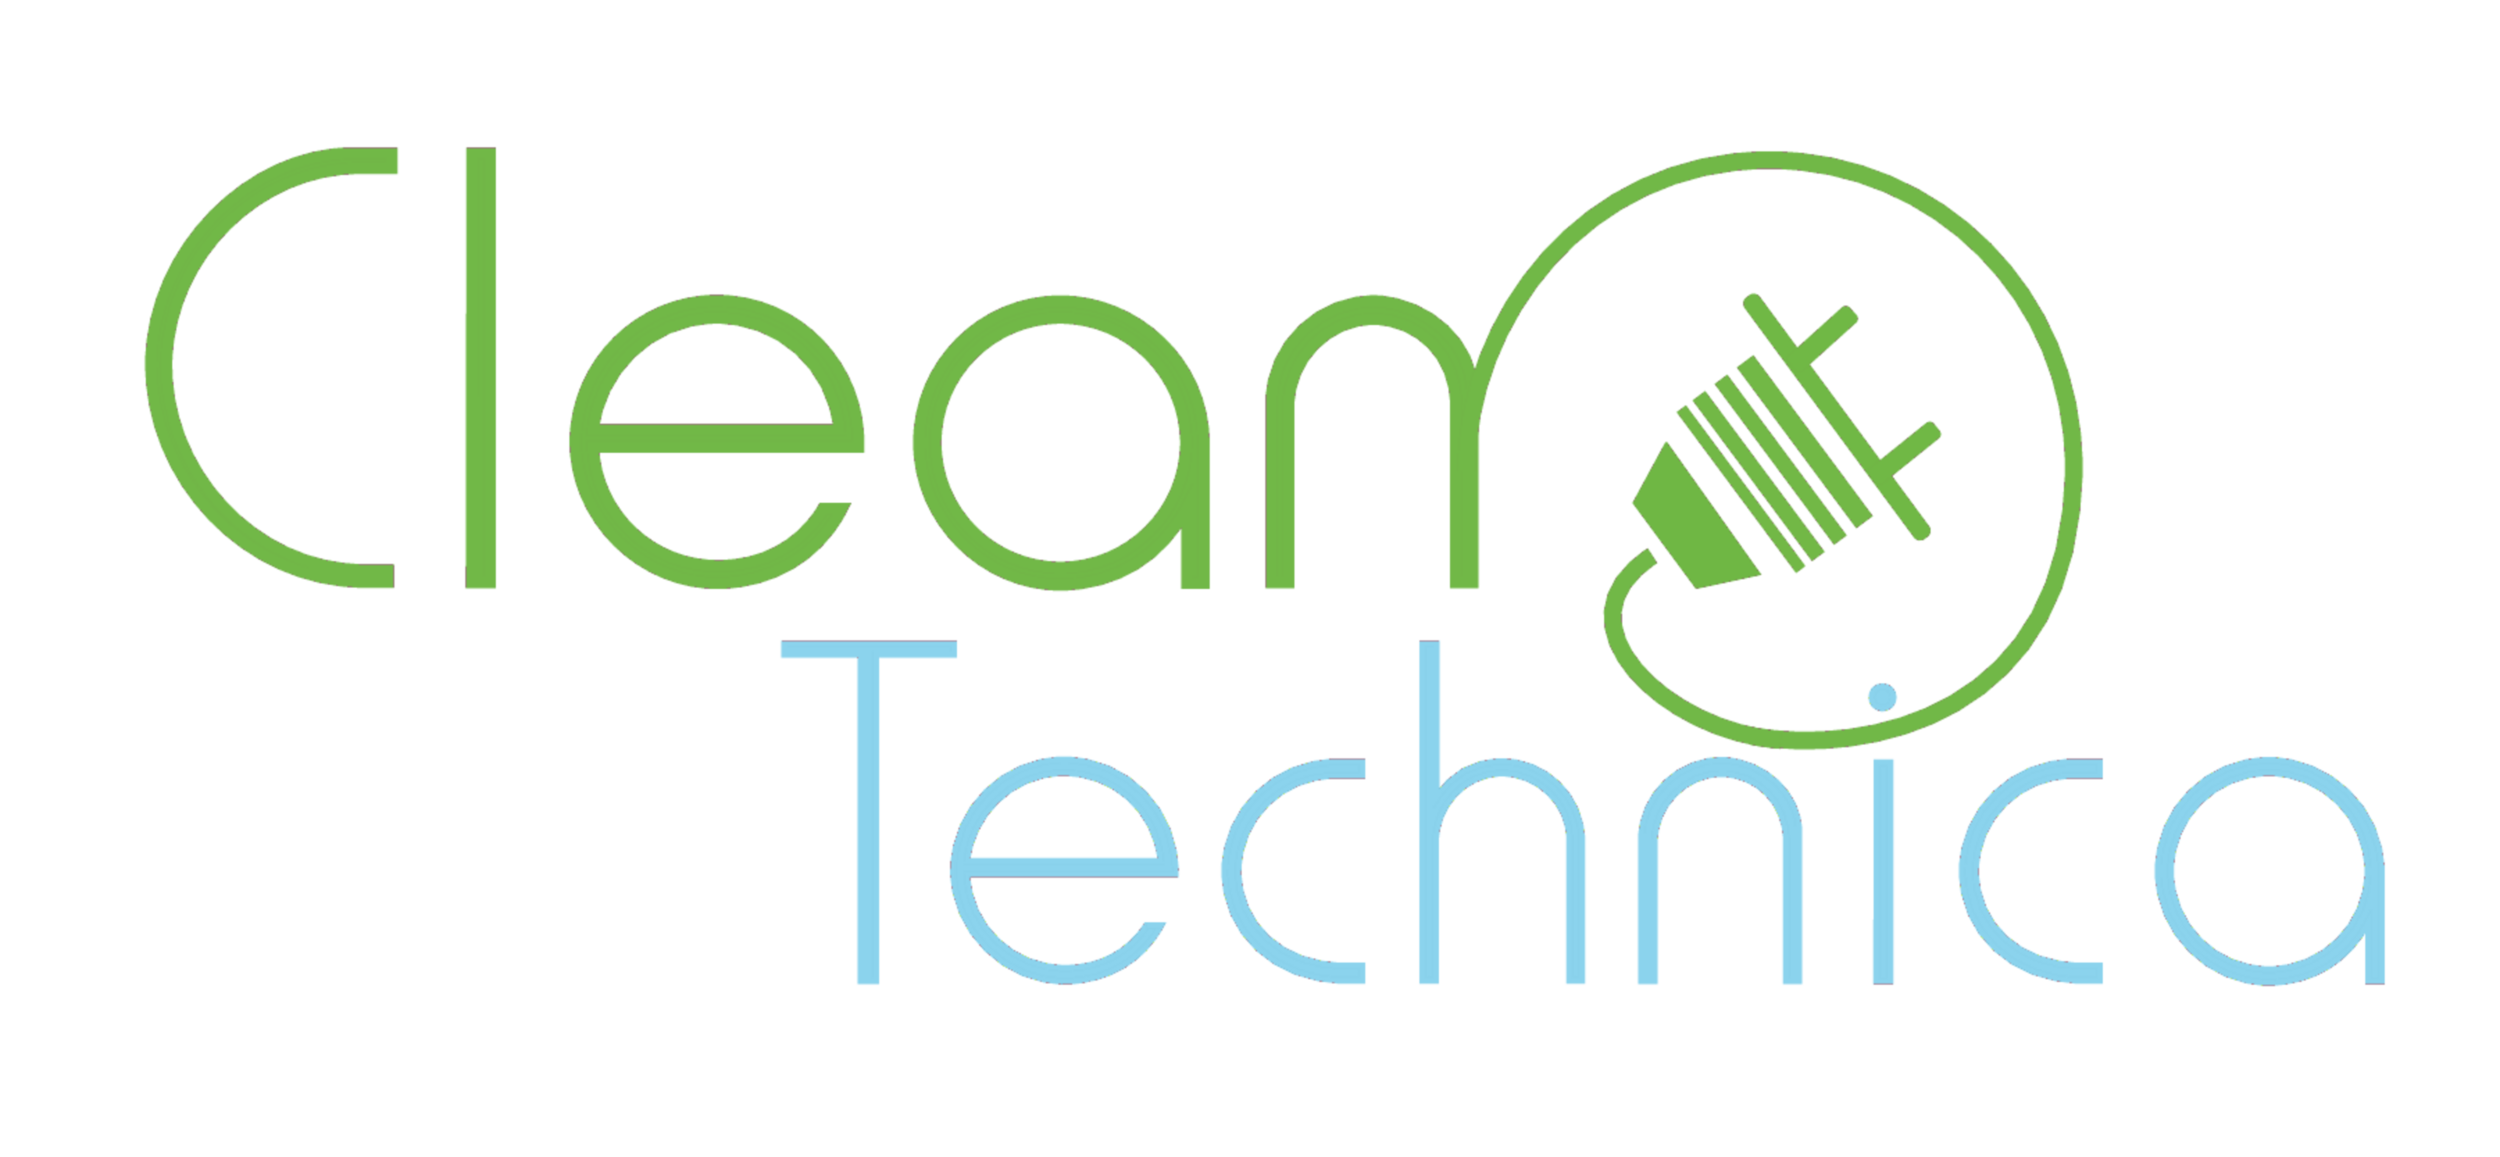 Cleantechnica - CleanTechnica is the #1 cleantech-focused website in the US and the world.CleanTechnica strives to be (er… remain) the most indispensable website on the planet for cleantech news and commentary. We have been covering the cleantech industry obsessively since 2008 — before it was popular for mainstream media to dedicate blogs or subdomains to the topic.